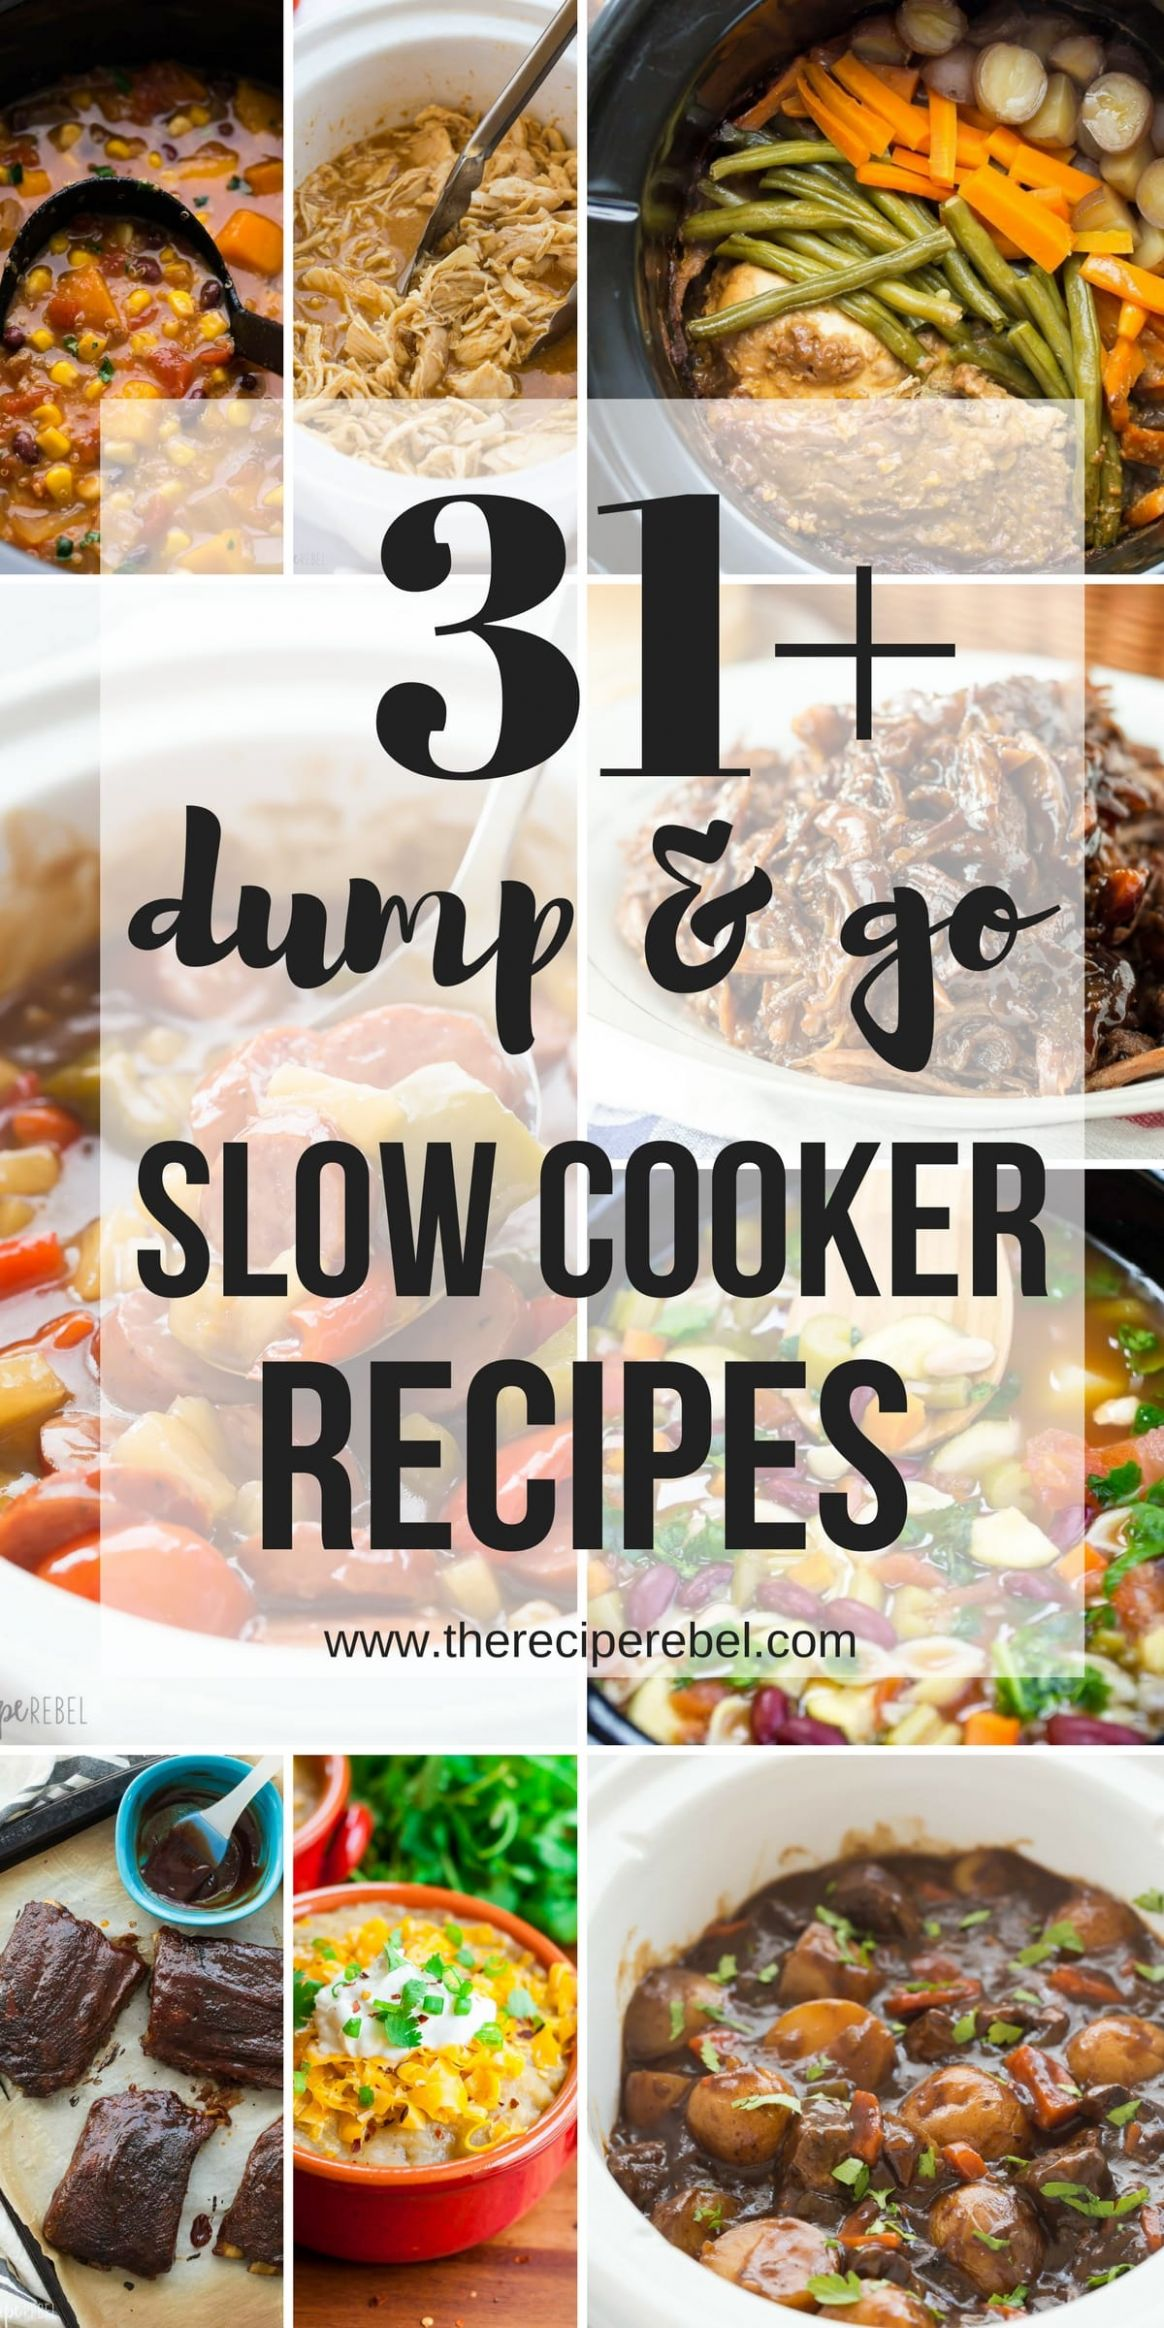 9 Dump and Go Slow Cooker Recipes (Crock Pot Dump Meals) - Recipes Cooking For A Crowd